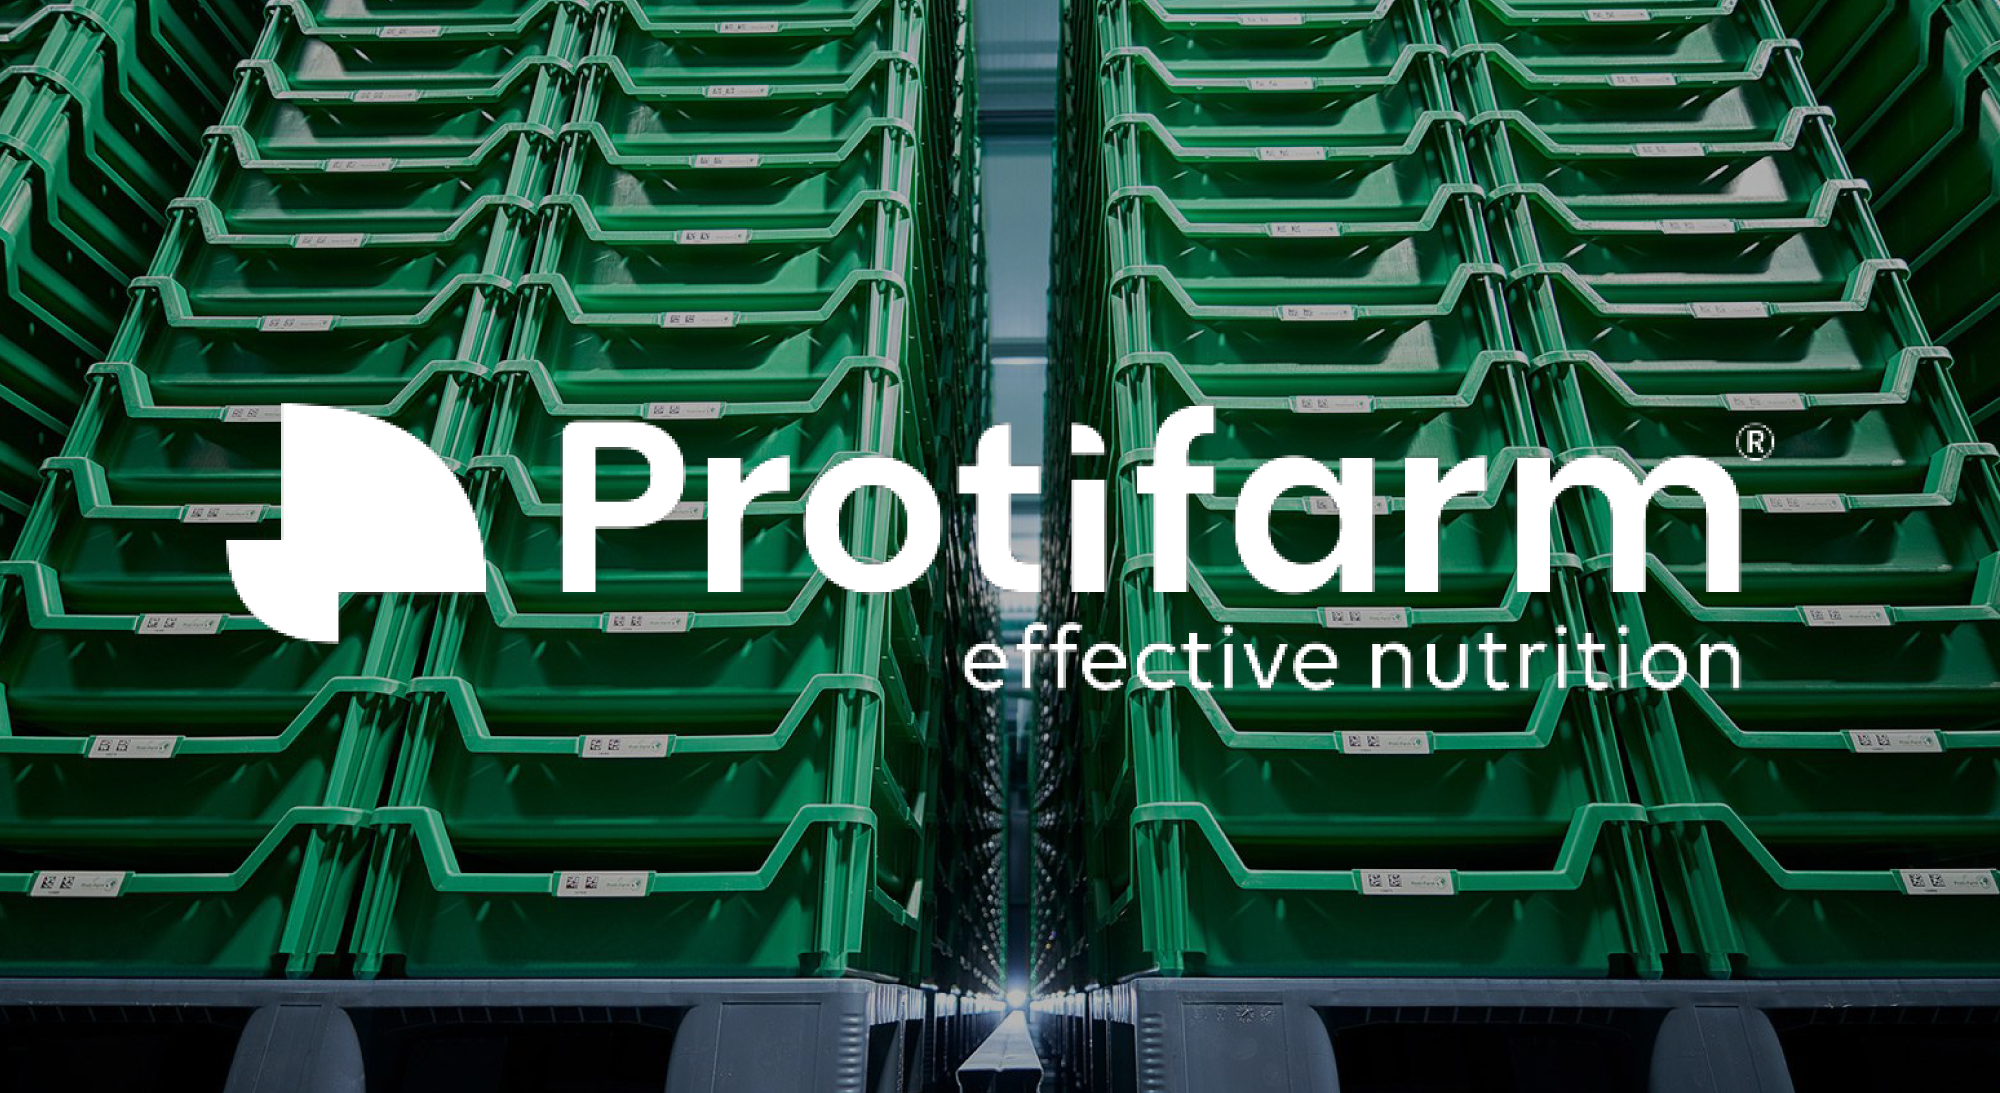 Protifarm produces sustainable, high quality insect ingredients for the food and pharmaceutical industries.